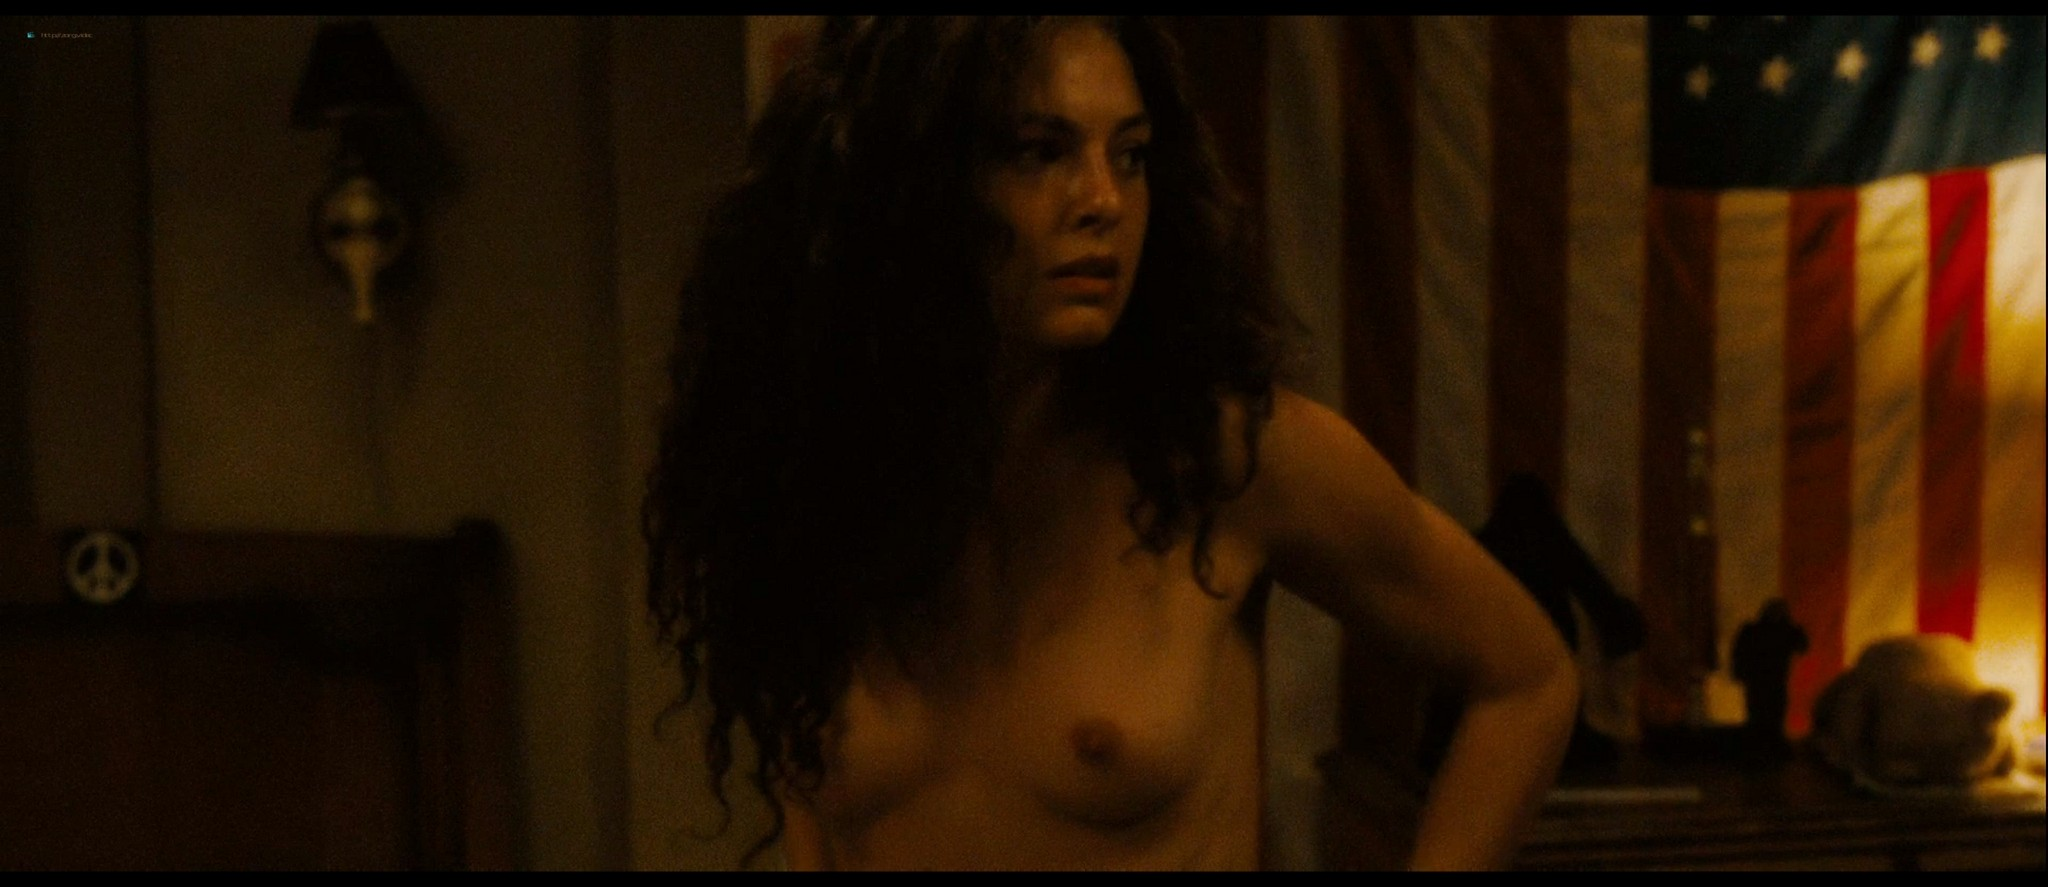 Radha Mitchell nude full frontal, Alexa Davalos full-frontal - Feast Of Love (2007) HD 1080p BluRay (17)